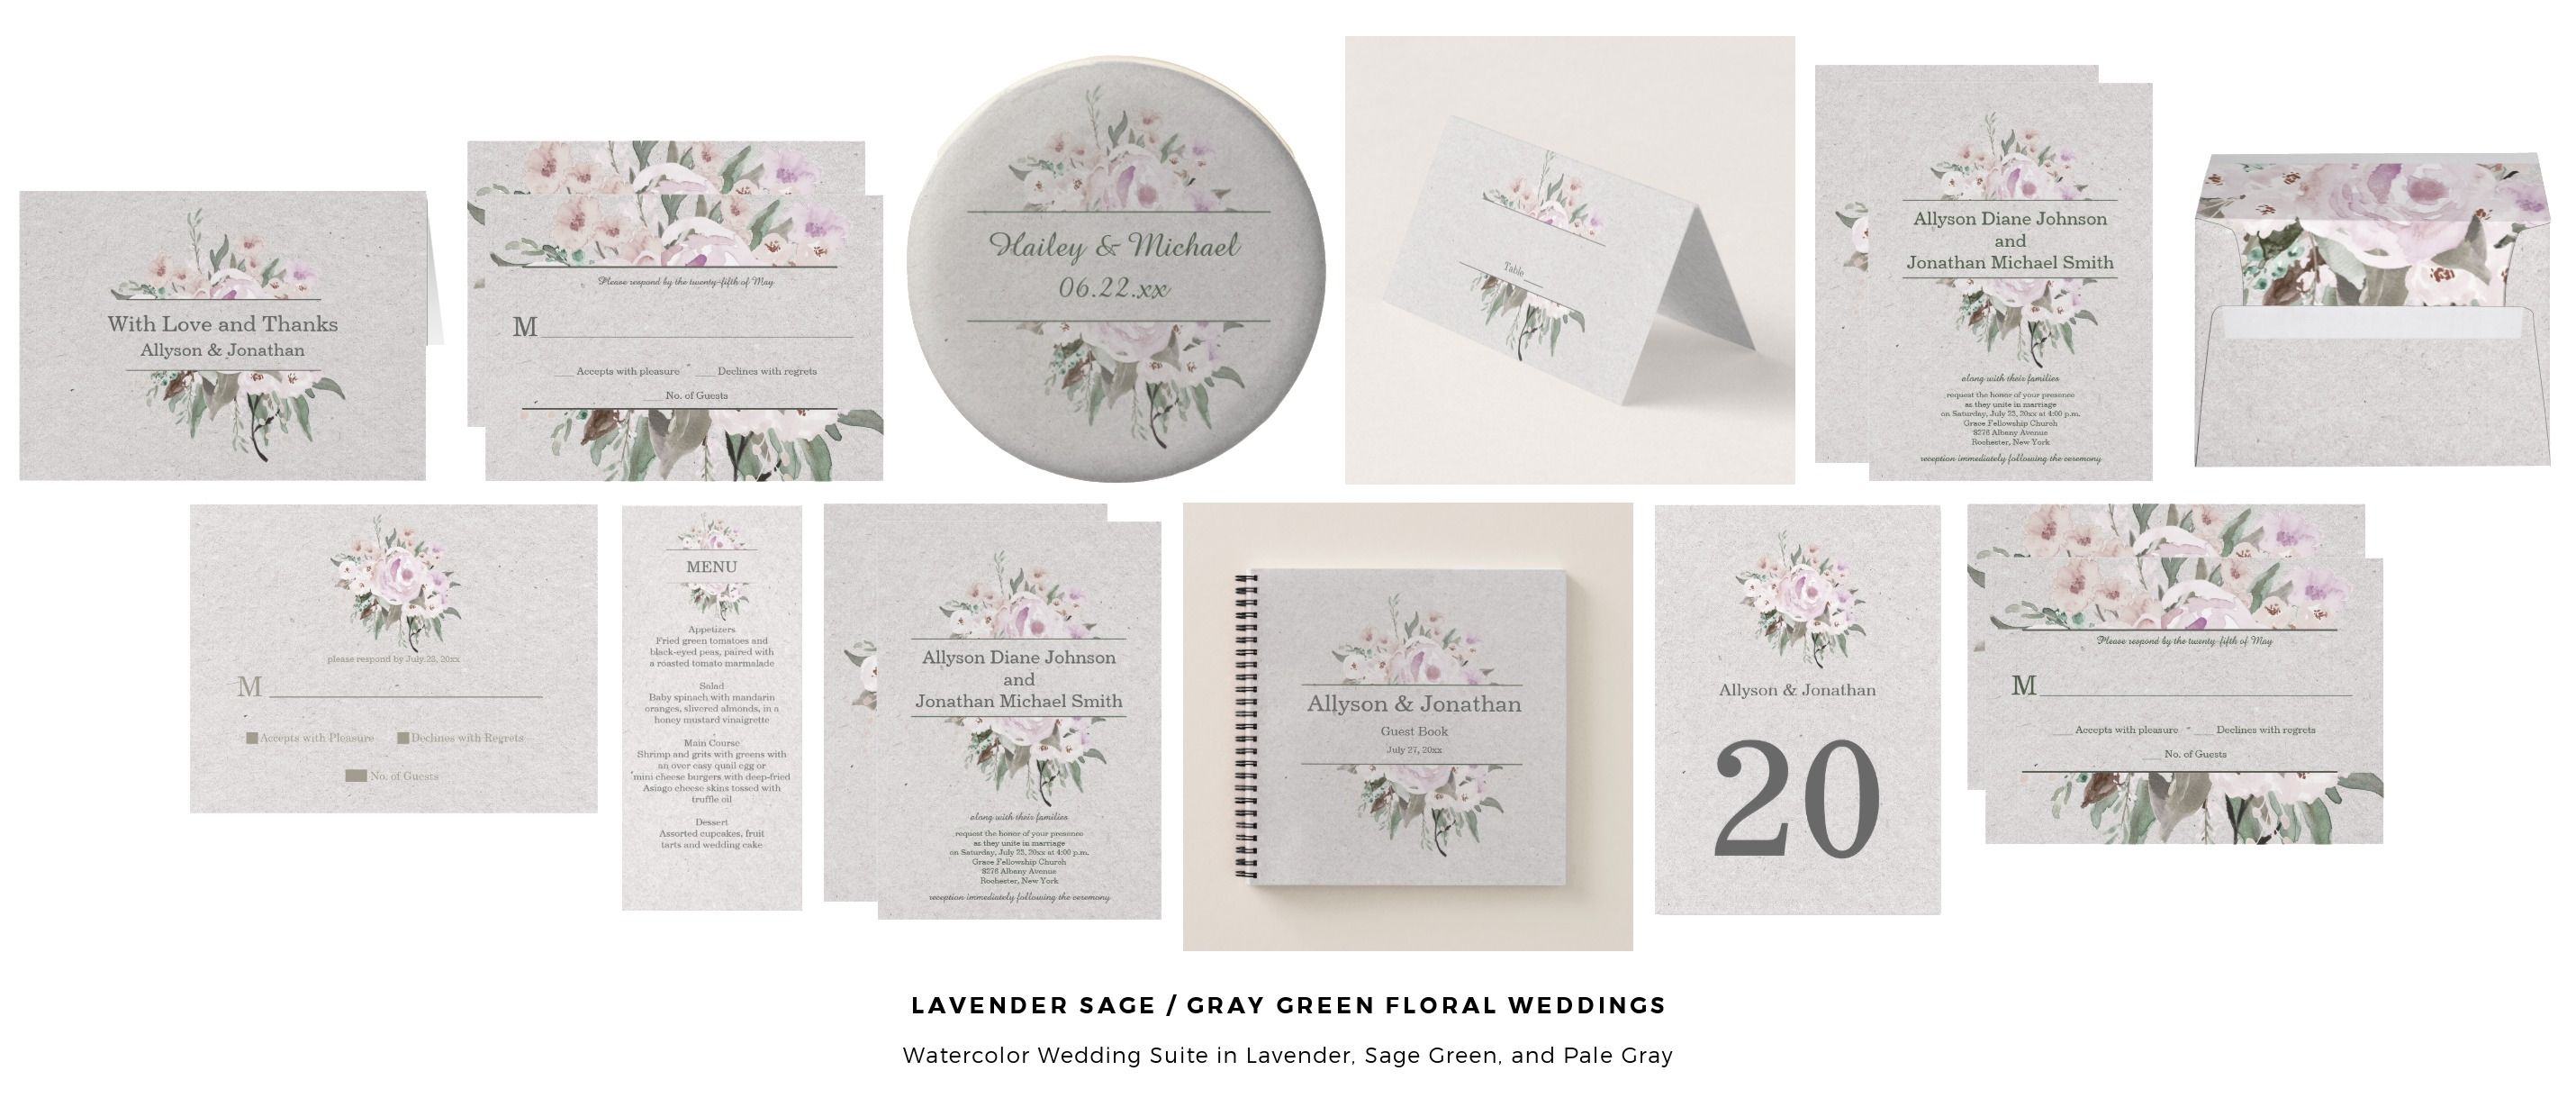 Lavender Sage Gray Green Floral Weddings Watercolor Wedding